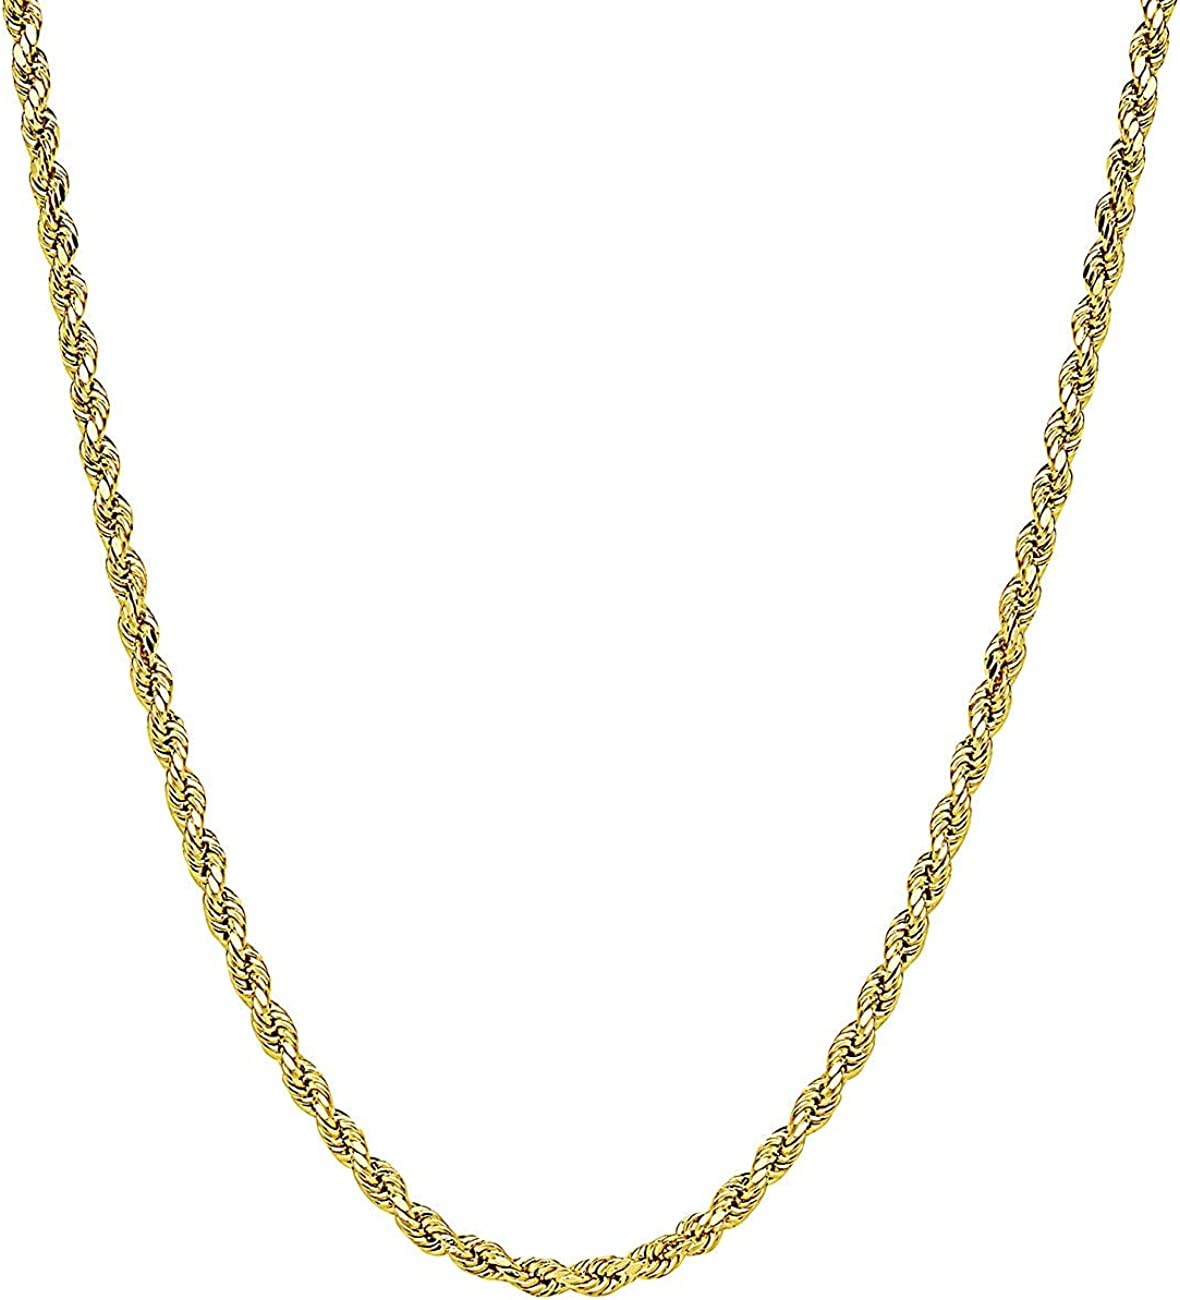 ITALY Jewelry 14K Gold Chain - 2.5MM Fancy Rope Chain Necklace, (18